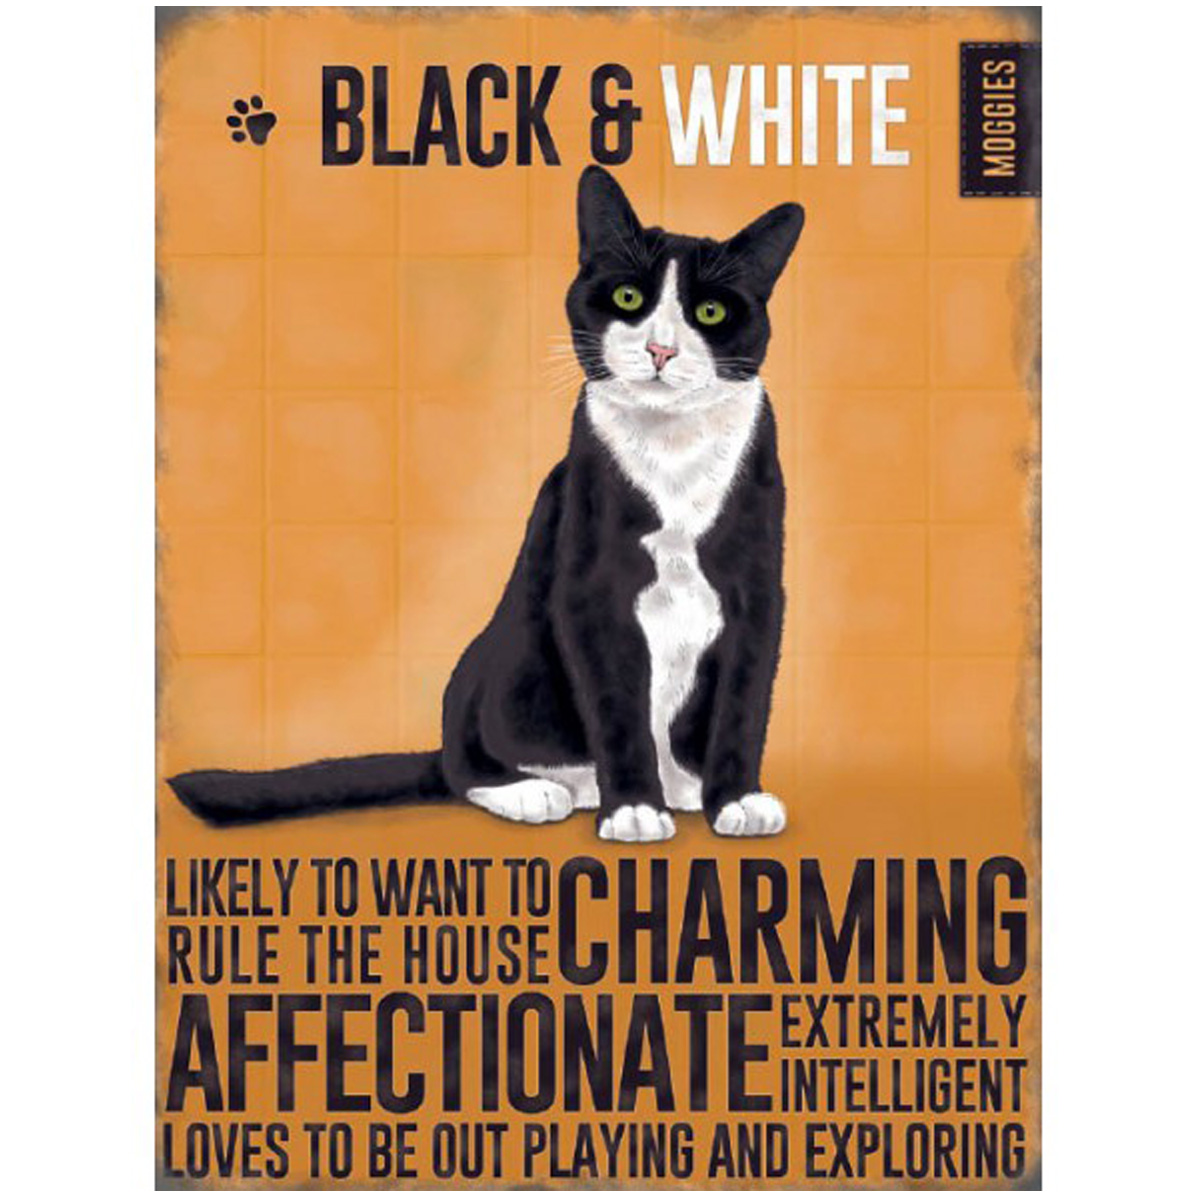 Magnet métal \'Chats\' orange noir blanc (Chat Noir & Blanc - Black and White) - 9x65 cm - [R1193]